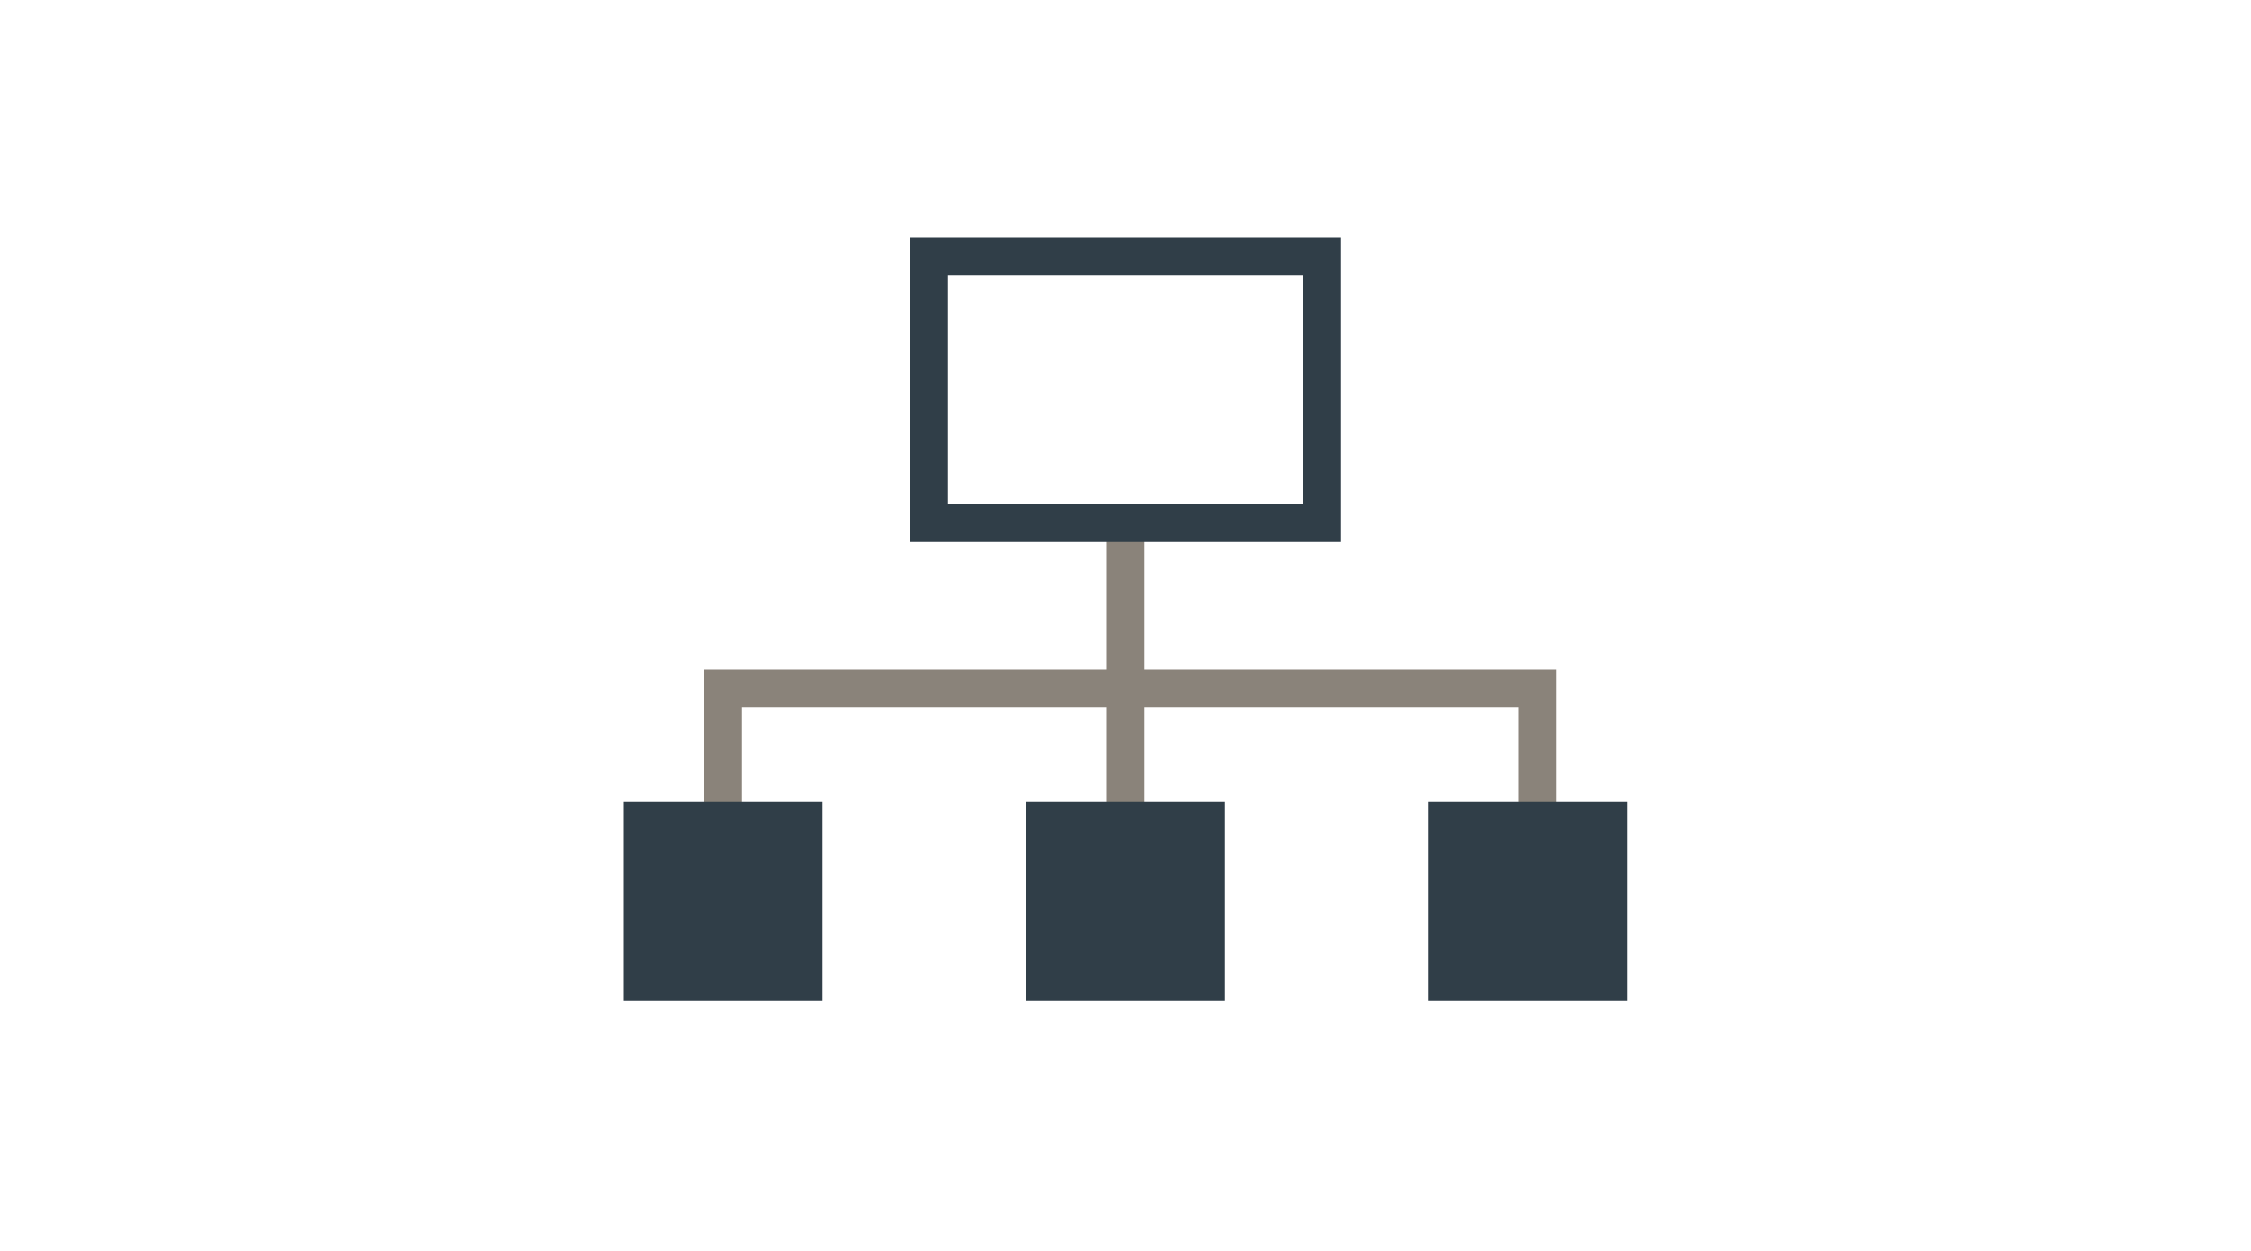 icon-data-silos.png